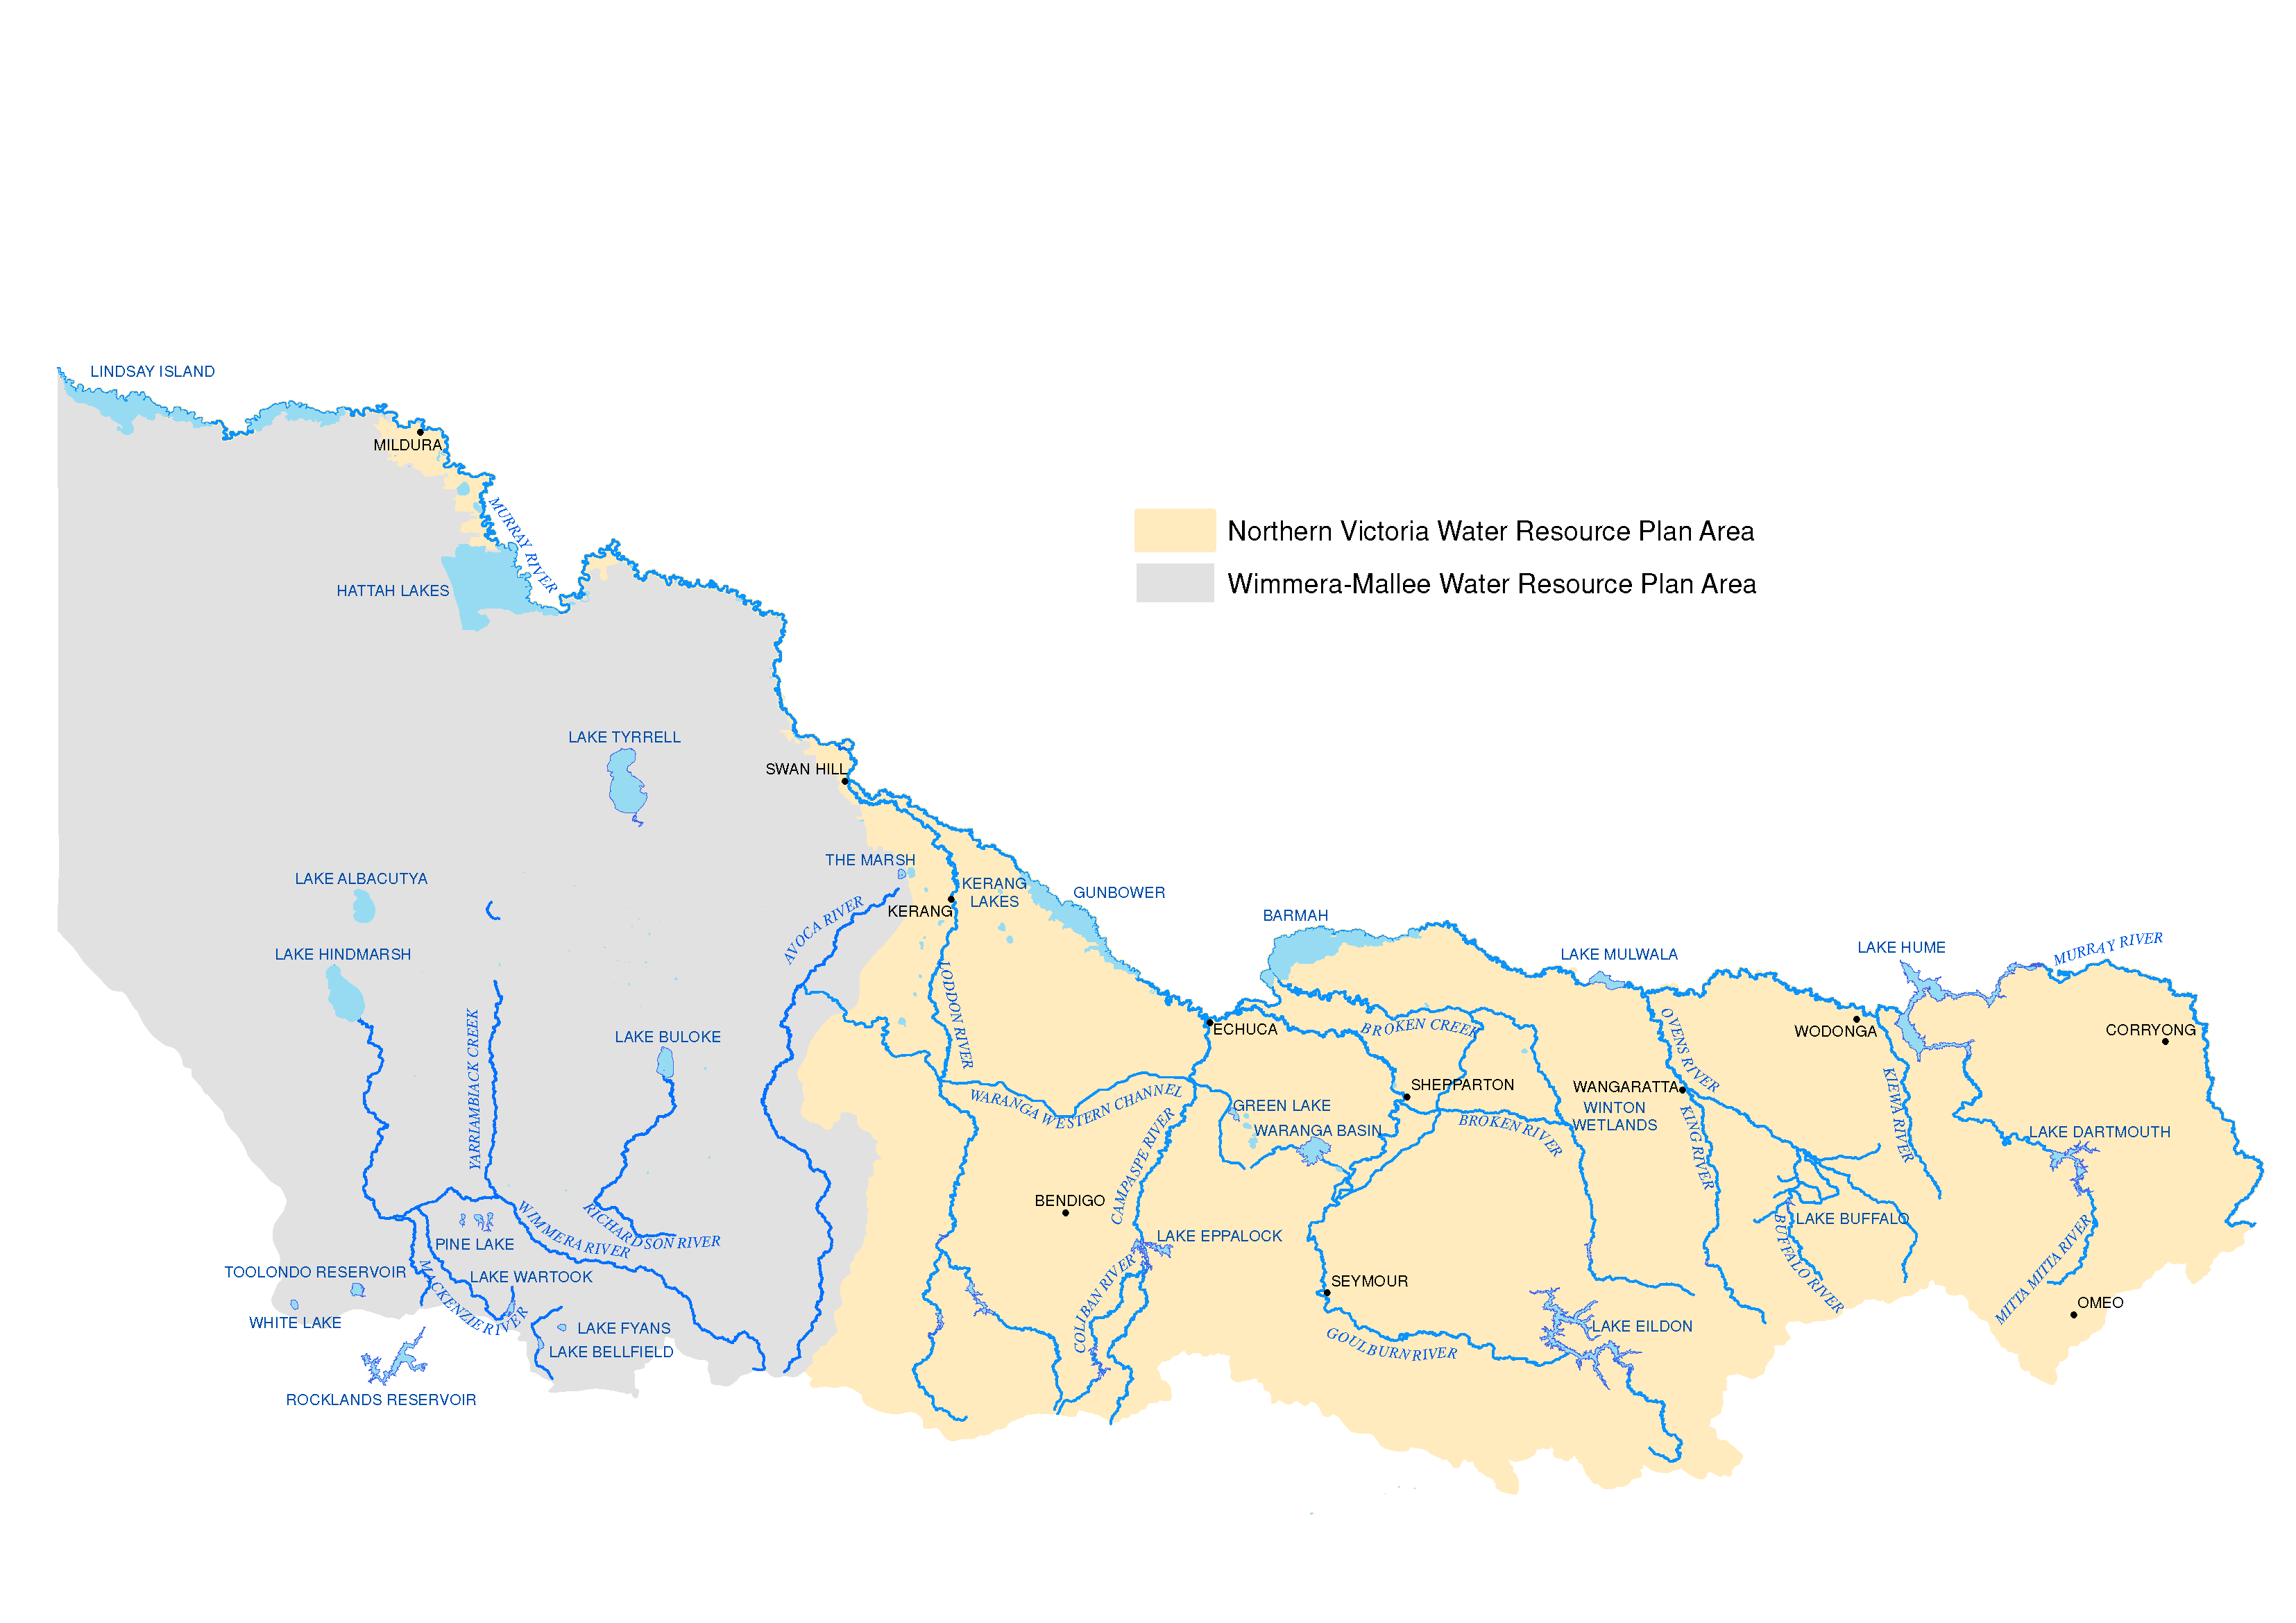 Map of Northern Victoria, showing area showing the area each plan covers: Northern Victoria Water Resource Plan to the East and Wimmera-Mallee Water Resource Plan to the West